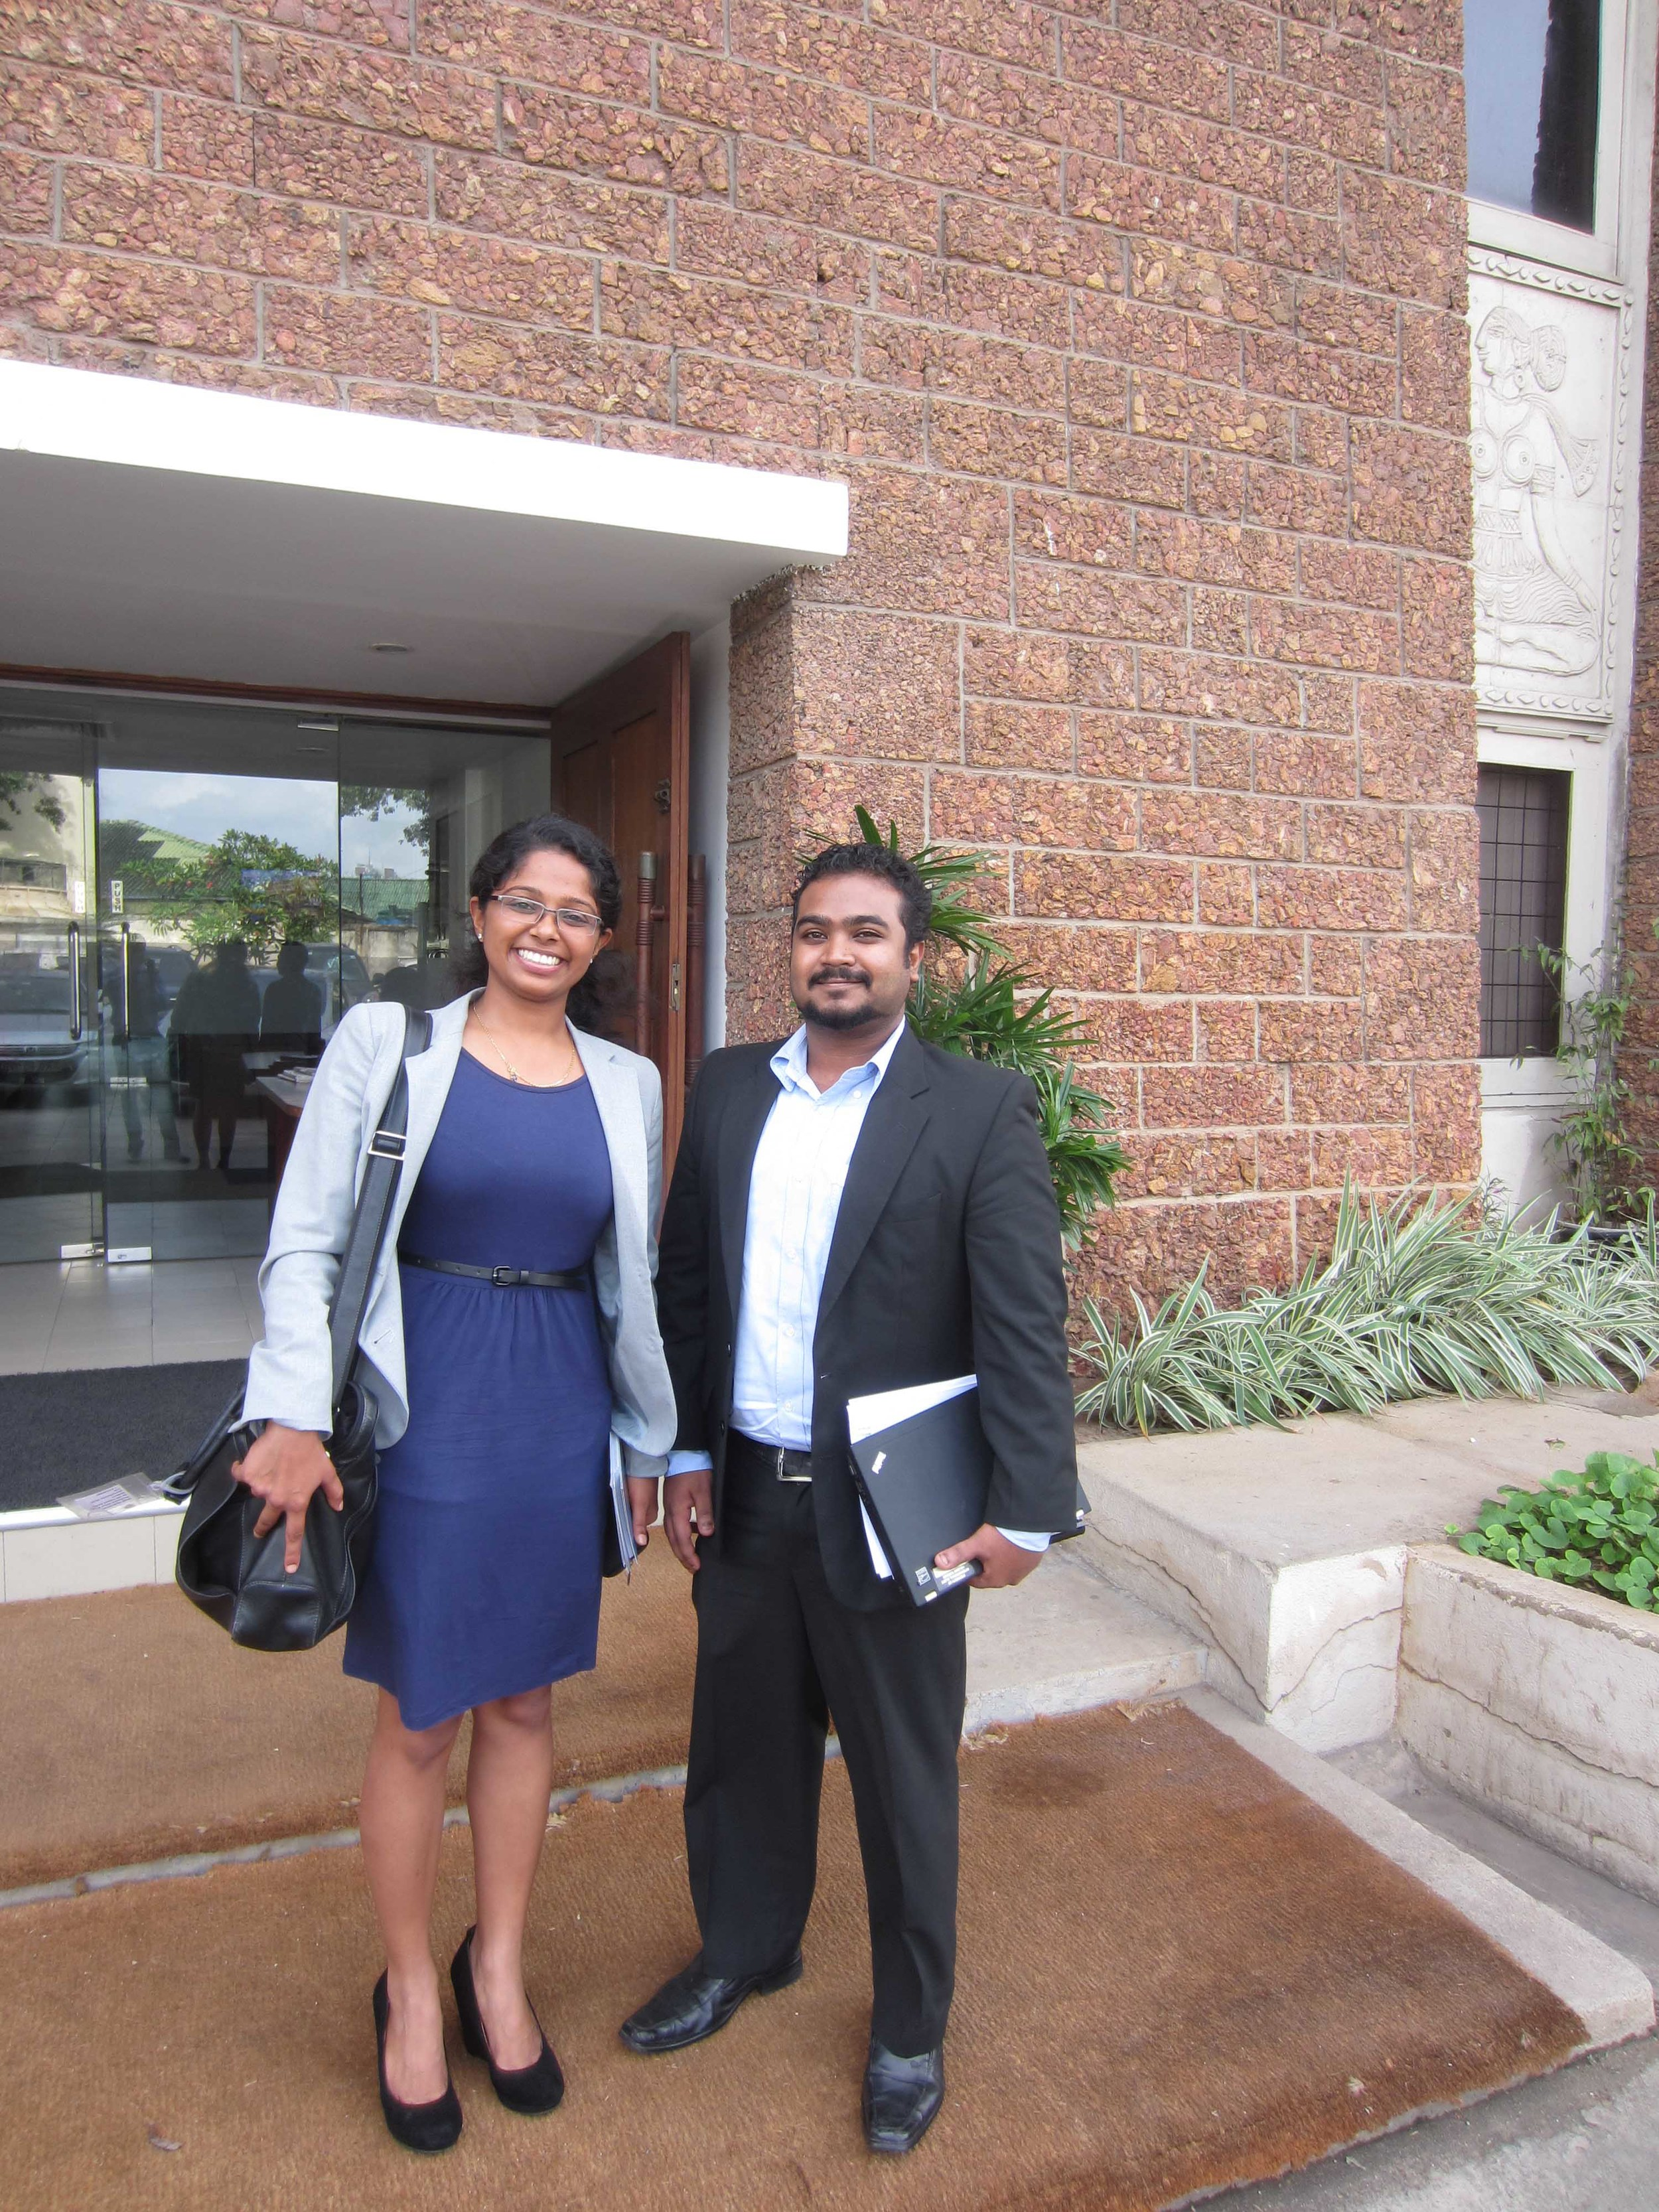 With Dhanusha, Educate Lanka's Country Co-ordinator after a successful presentation